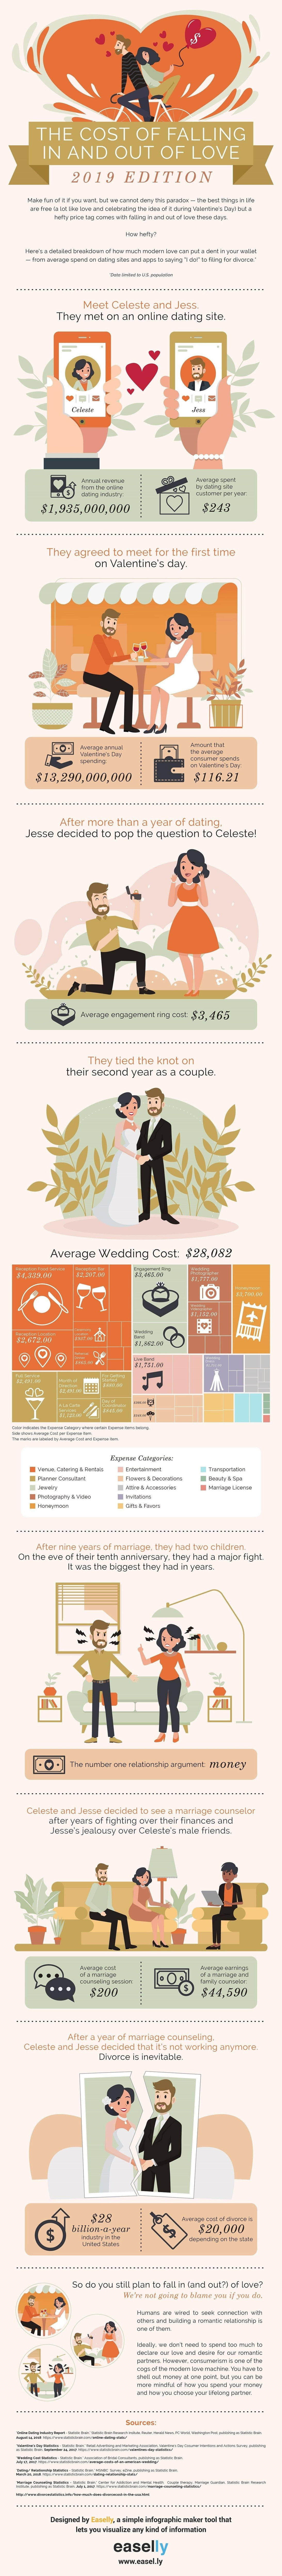 The In and Out of Love Cost of Falling: 2019 Edition #infographic